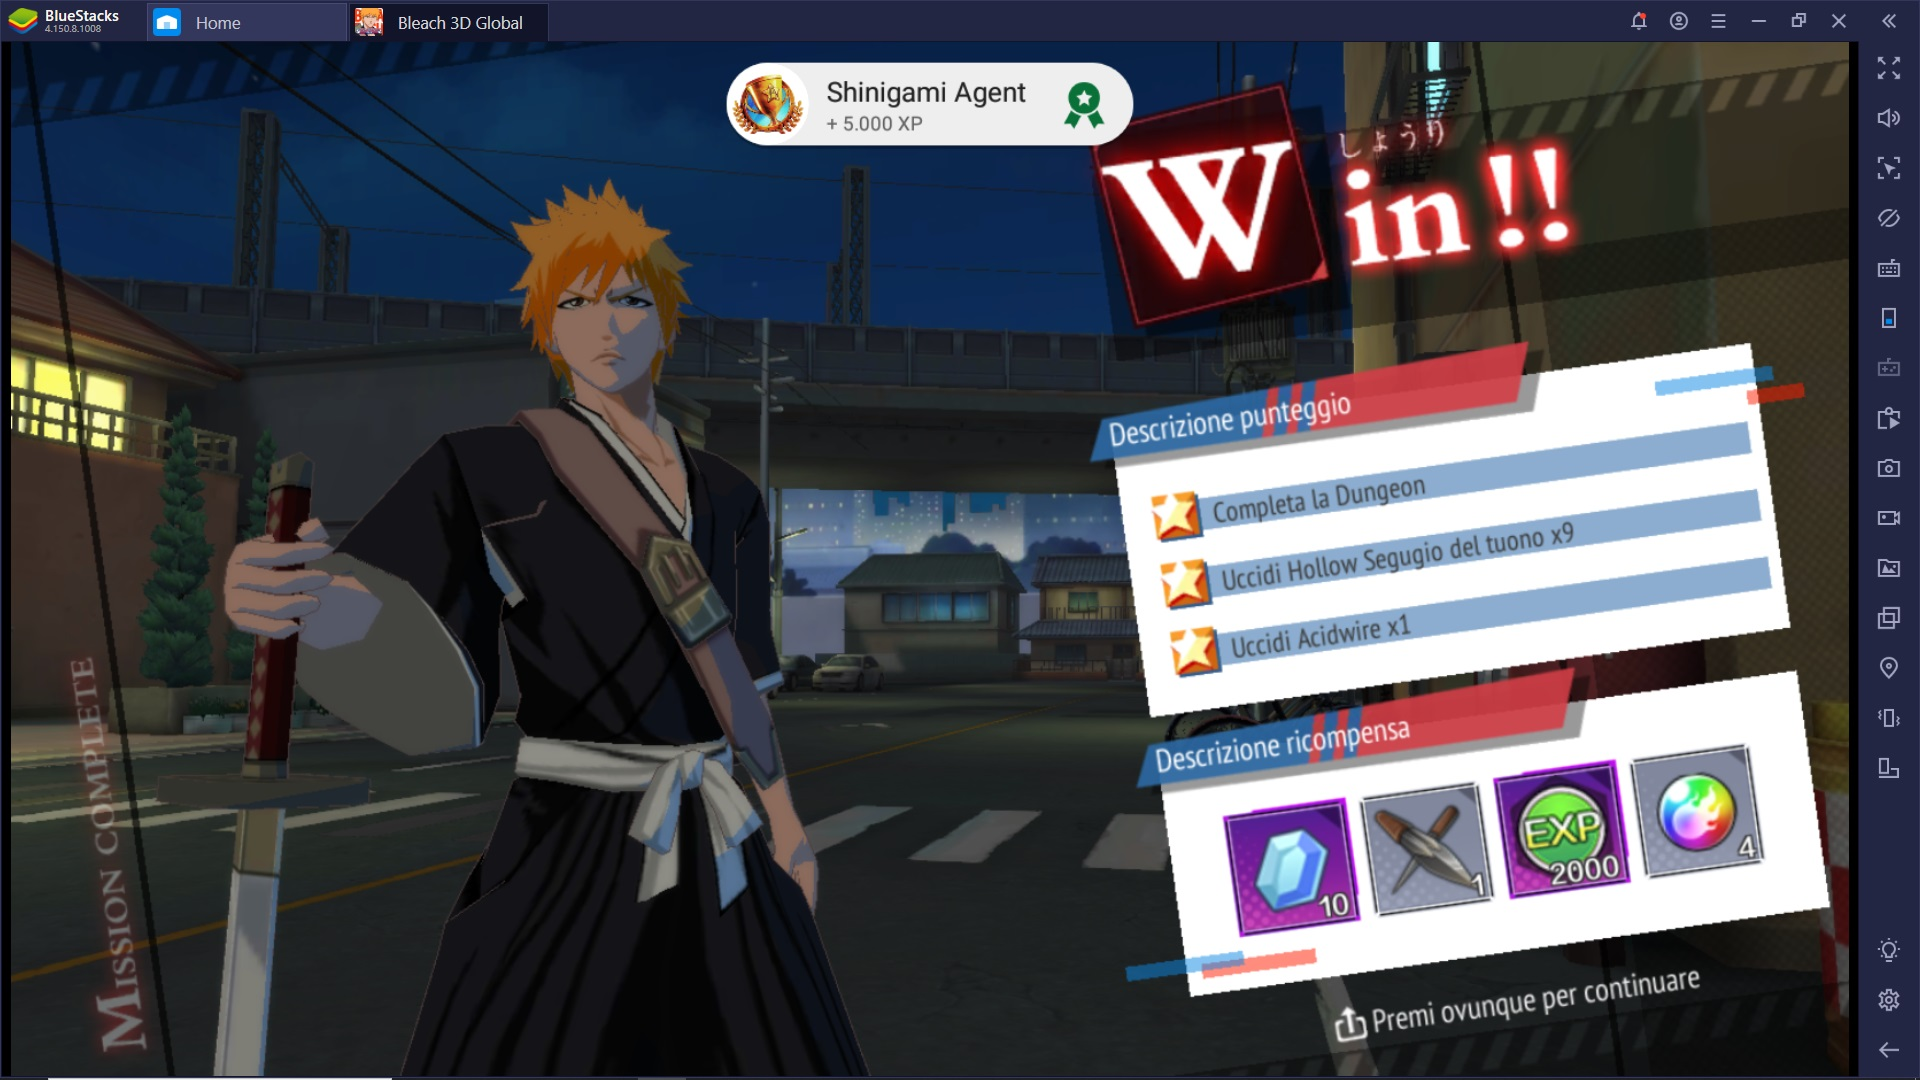 Come giocare a BLEACH Mobile 3D su PC con BlueStacks